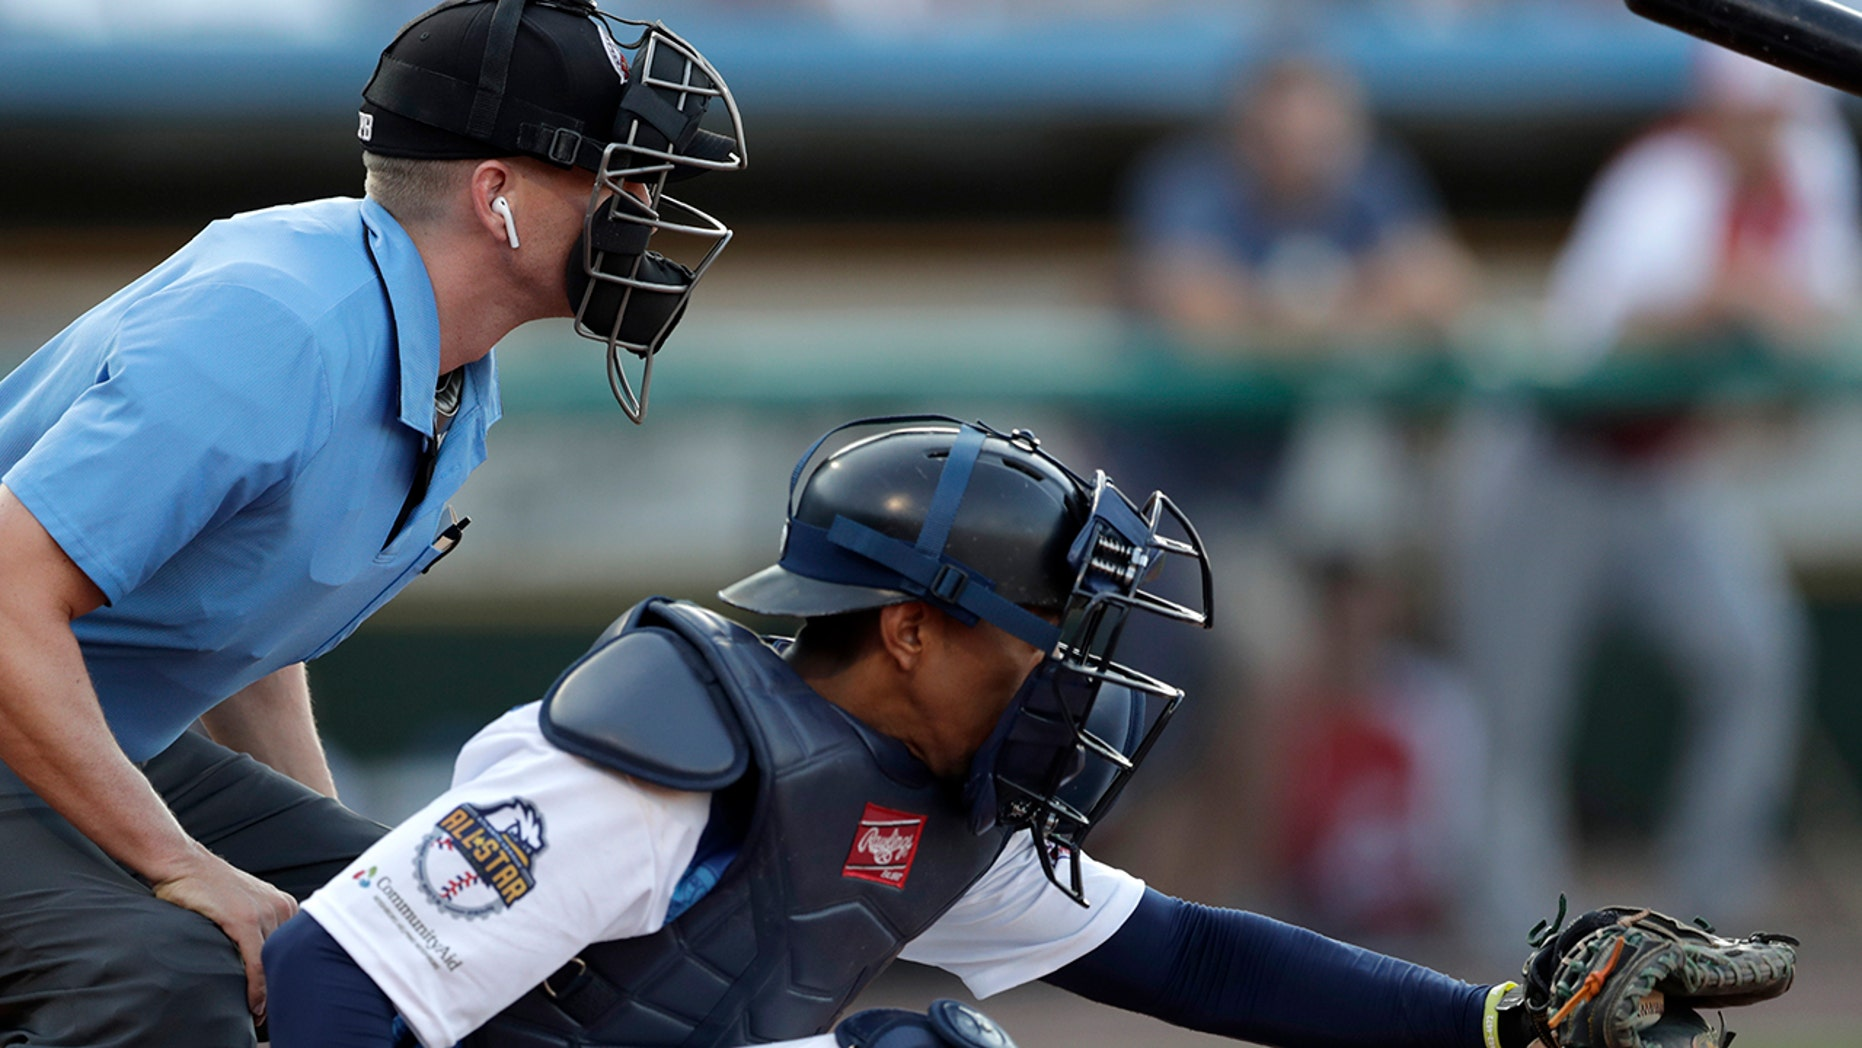 Home plate umpire Brian deBrauwere, left, huddles behind Freedom Division catcher James Skelton, of the York Revolution, as the official wears an earpiece during the first inning of the Atlantic League All-Star minor league baseball game, Wednesday, July 10, 2019, in York, Pa. (AP Photo/Julio Cortez)